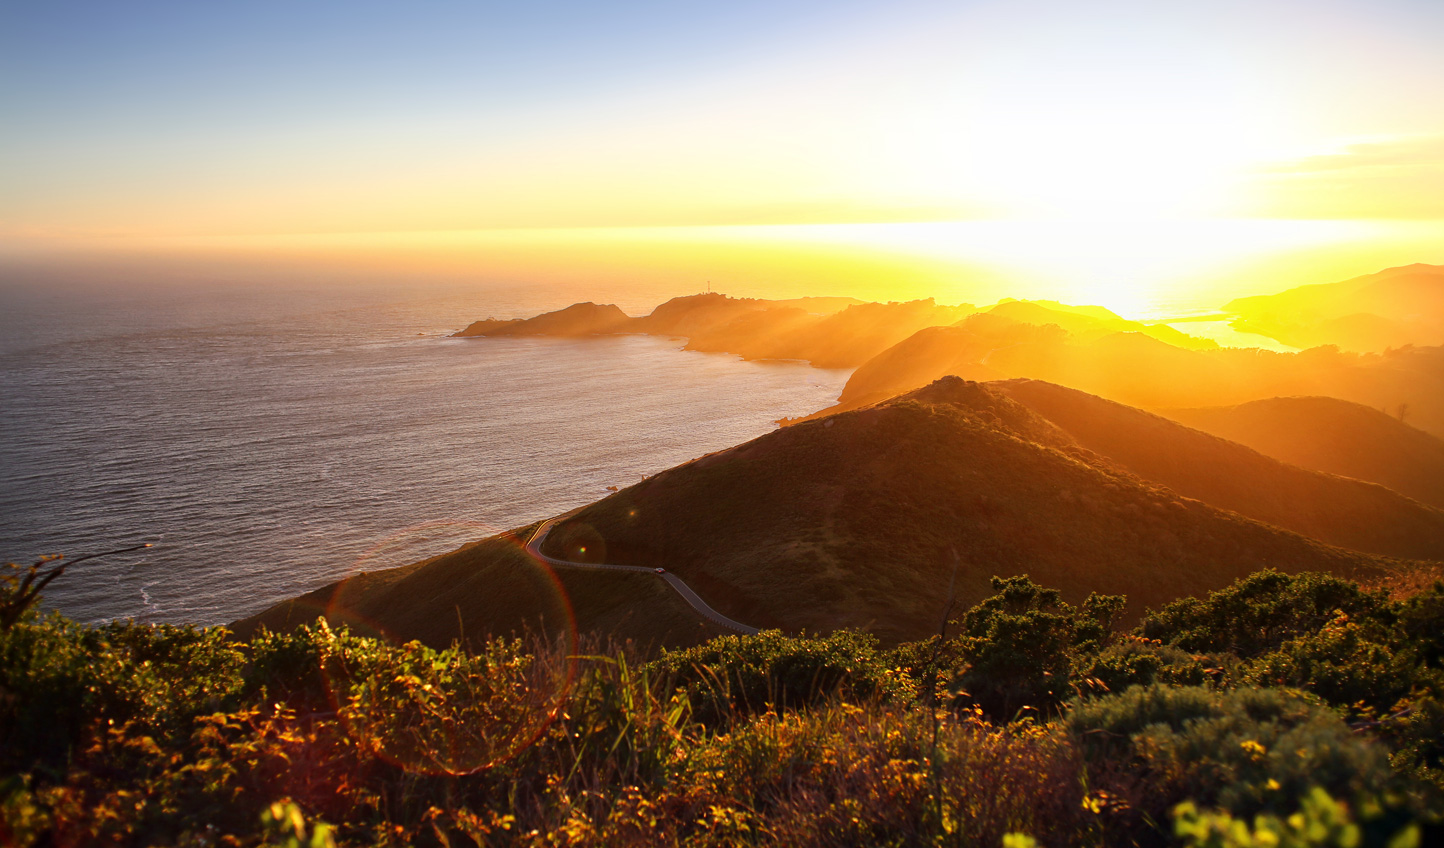 Head out on a sunset hike for an energising start to your day